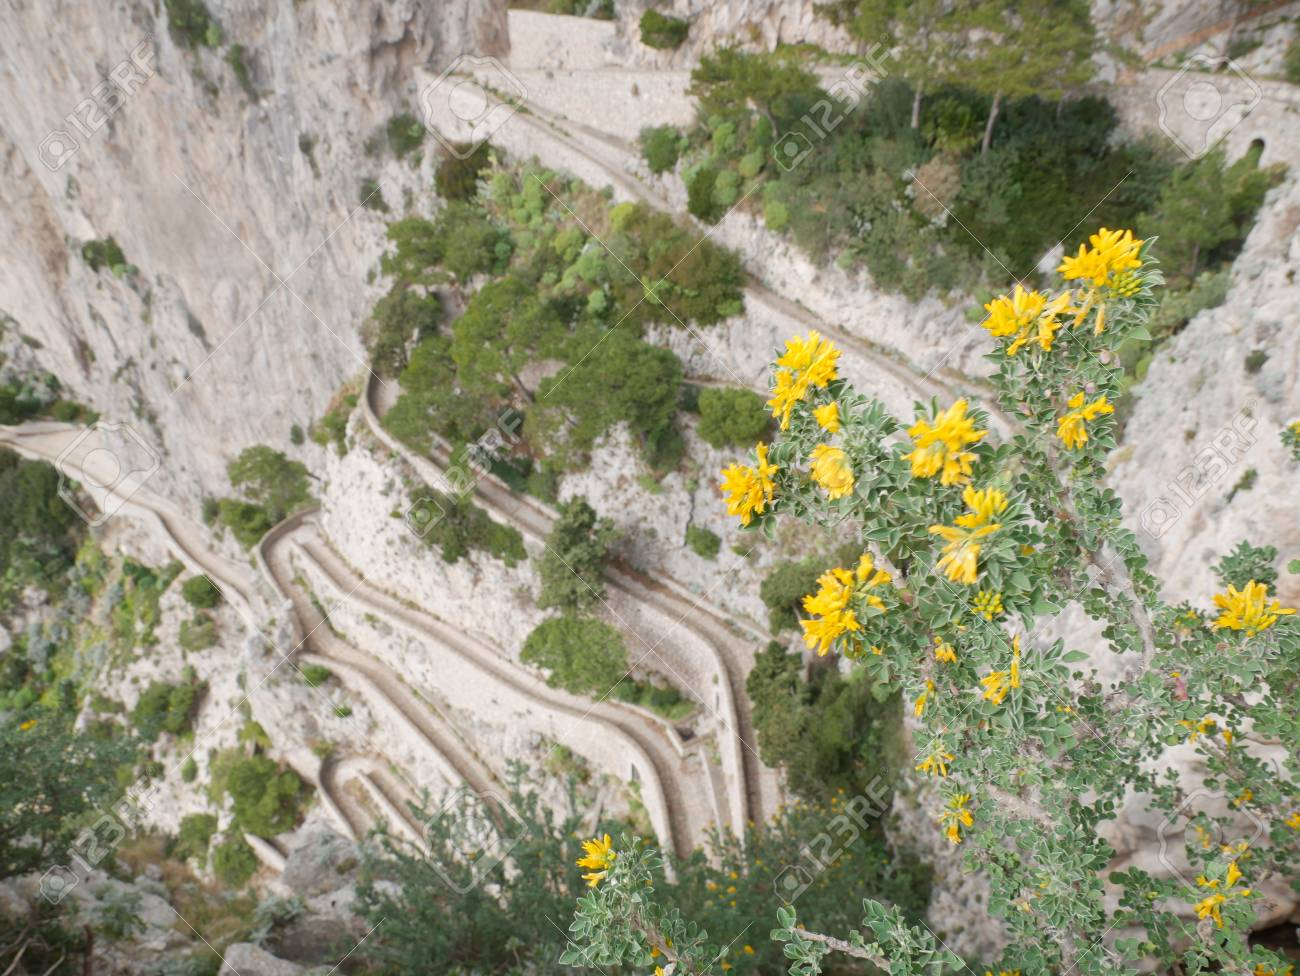 Steep Serpentine Road With Trees Shot From Above And Yellow Mountain